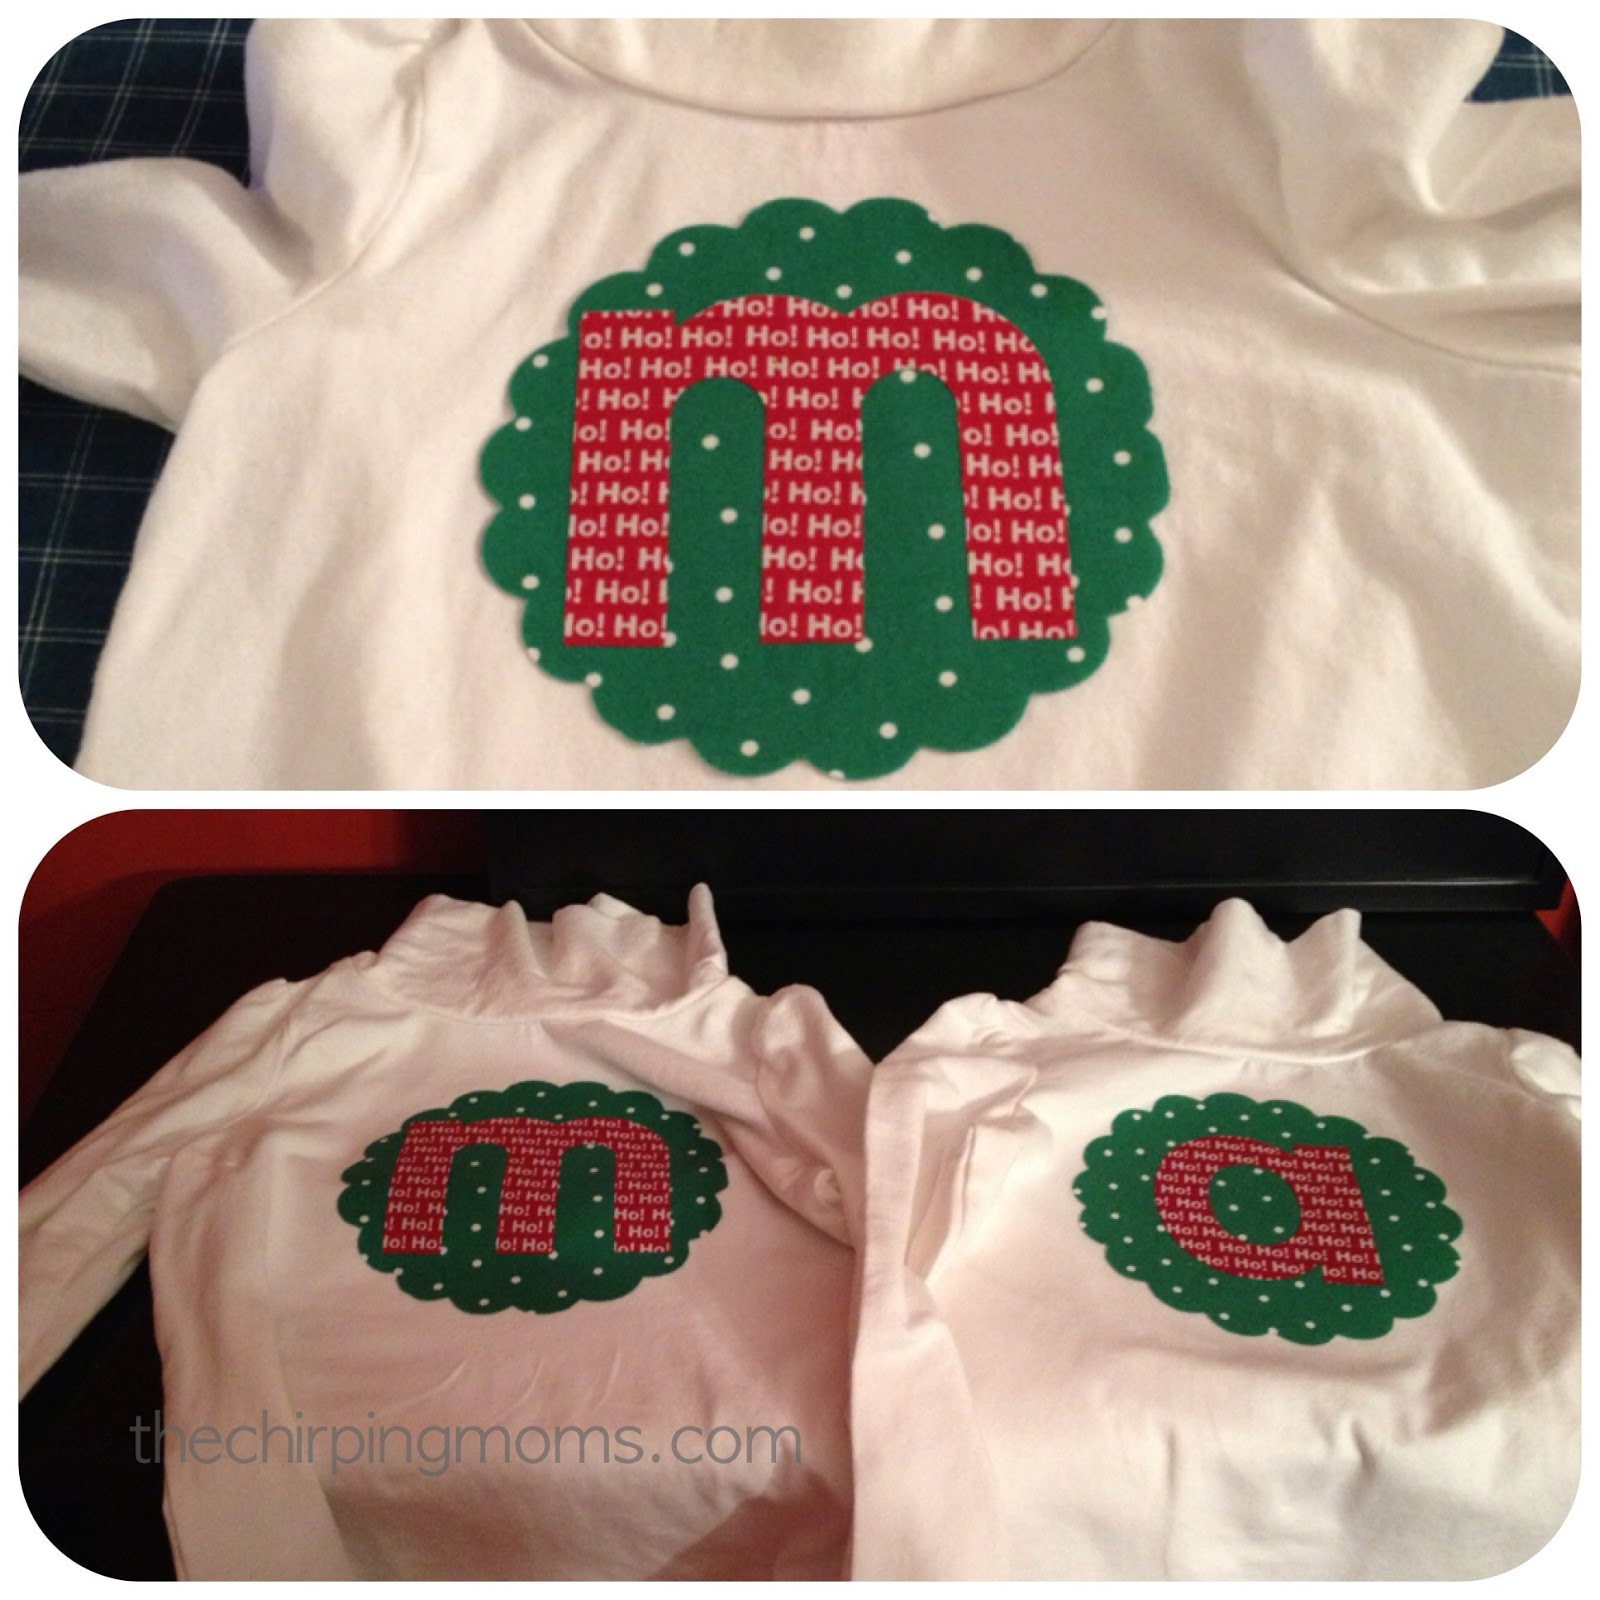 Two Simple Ways to Make Christmas Shirts - The Chirping Moms